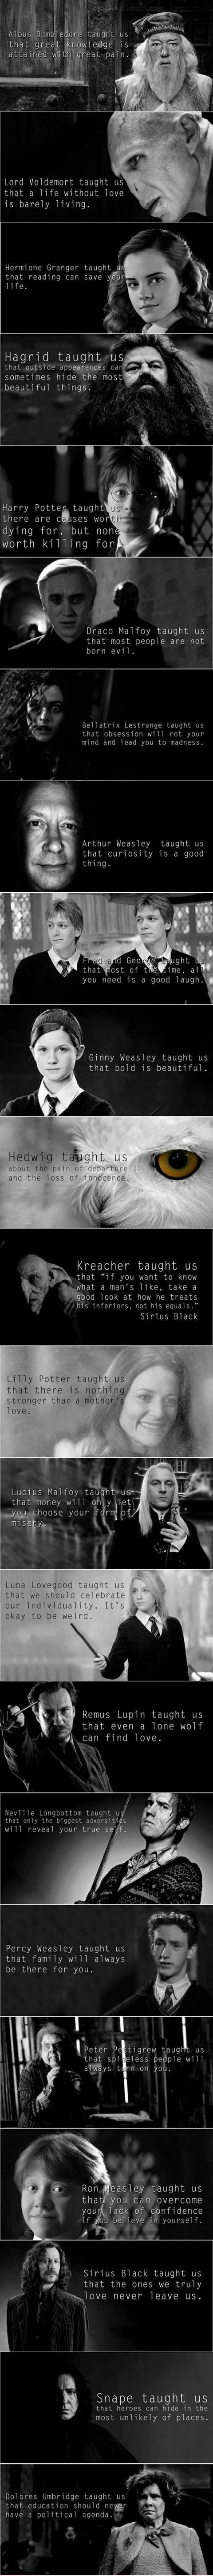 What the Harry Potter books taught us..